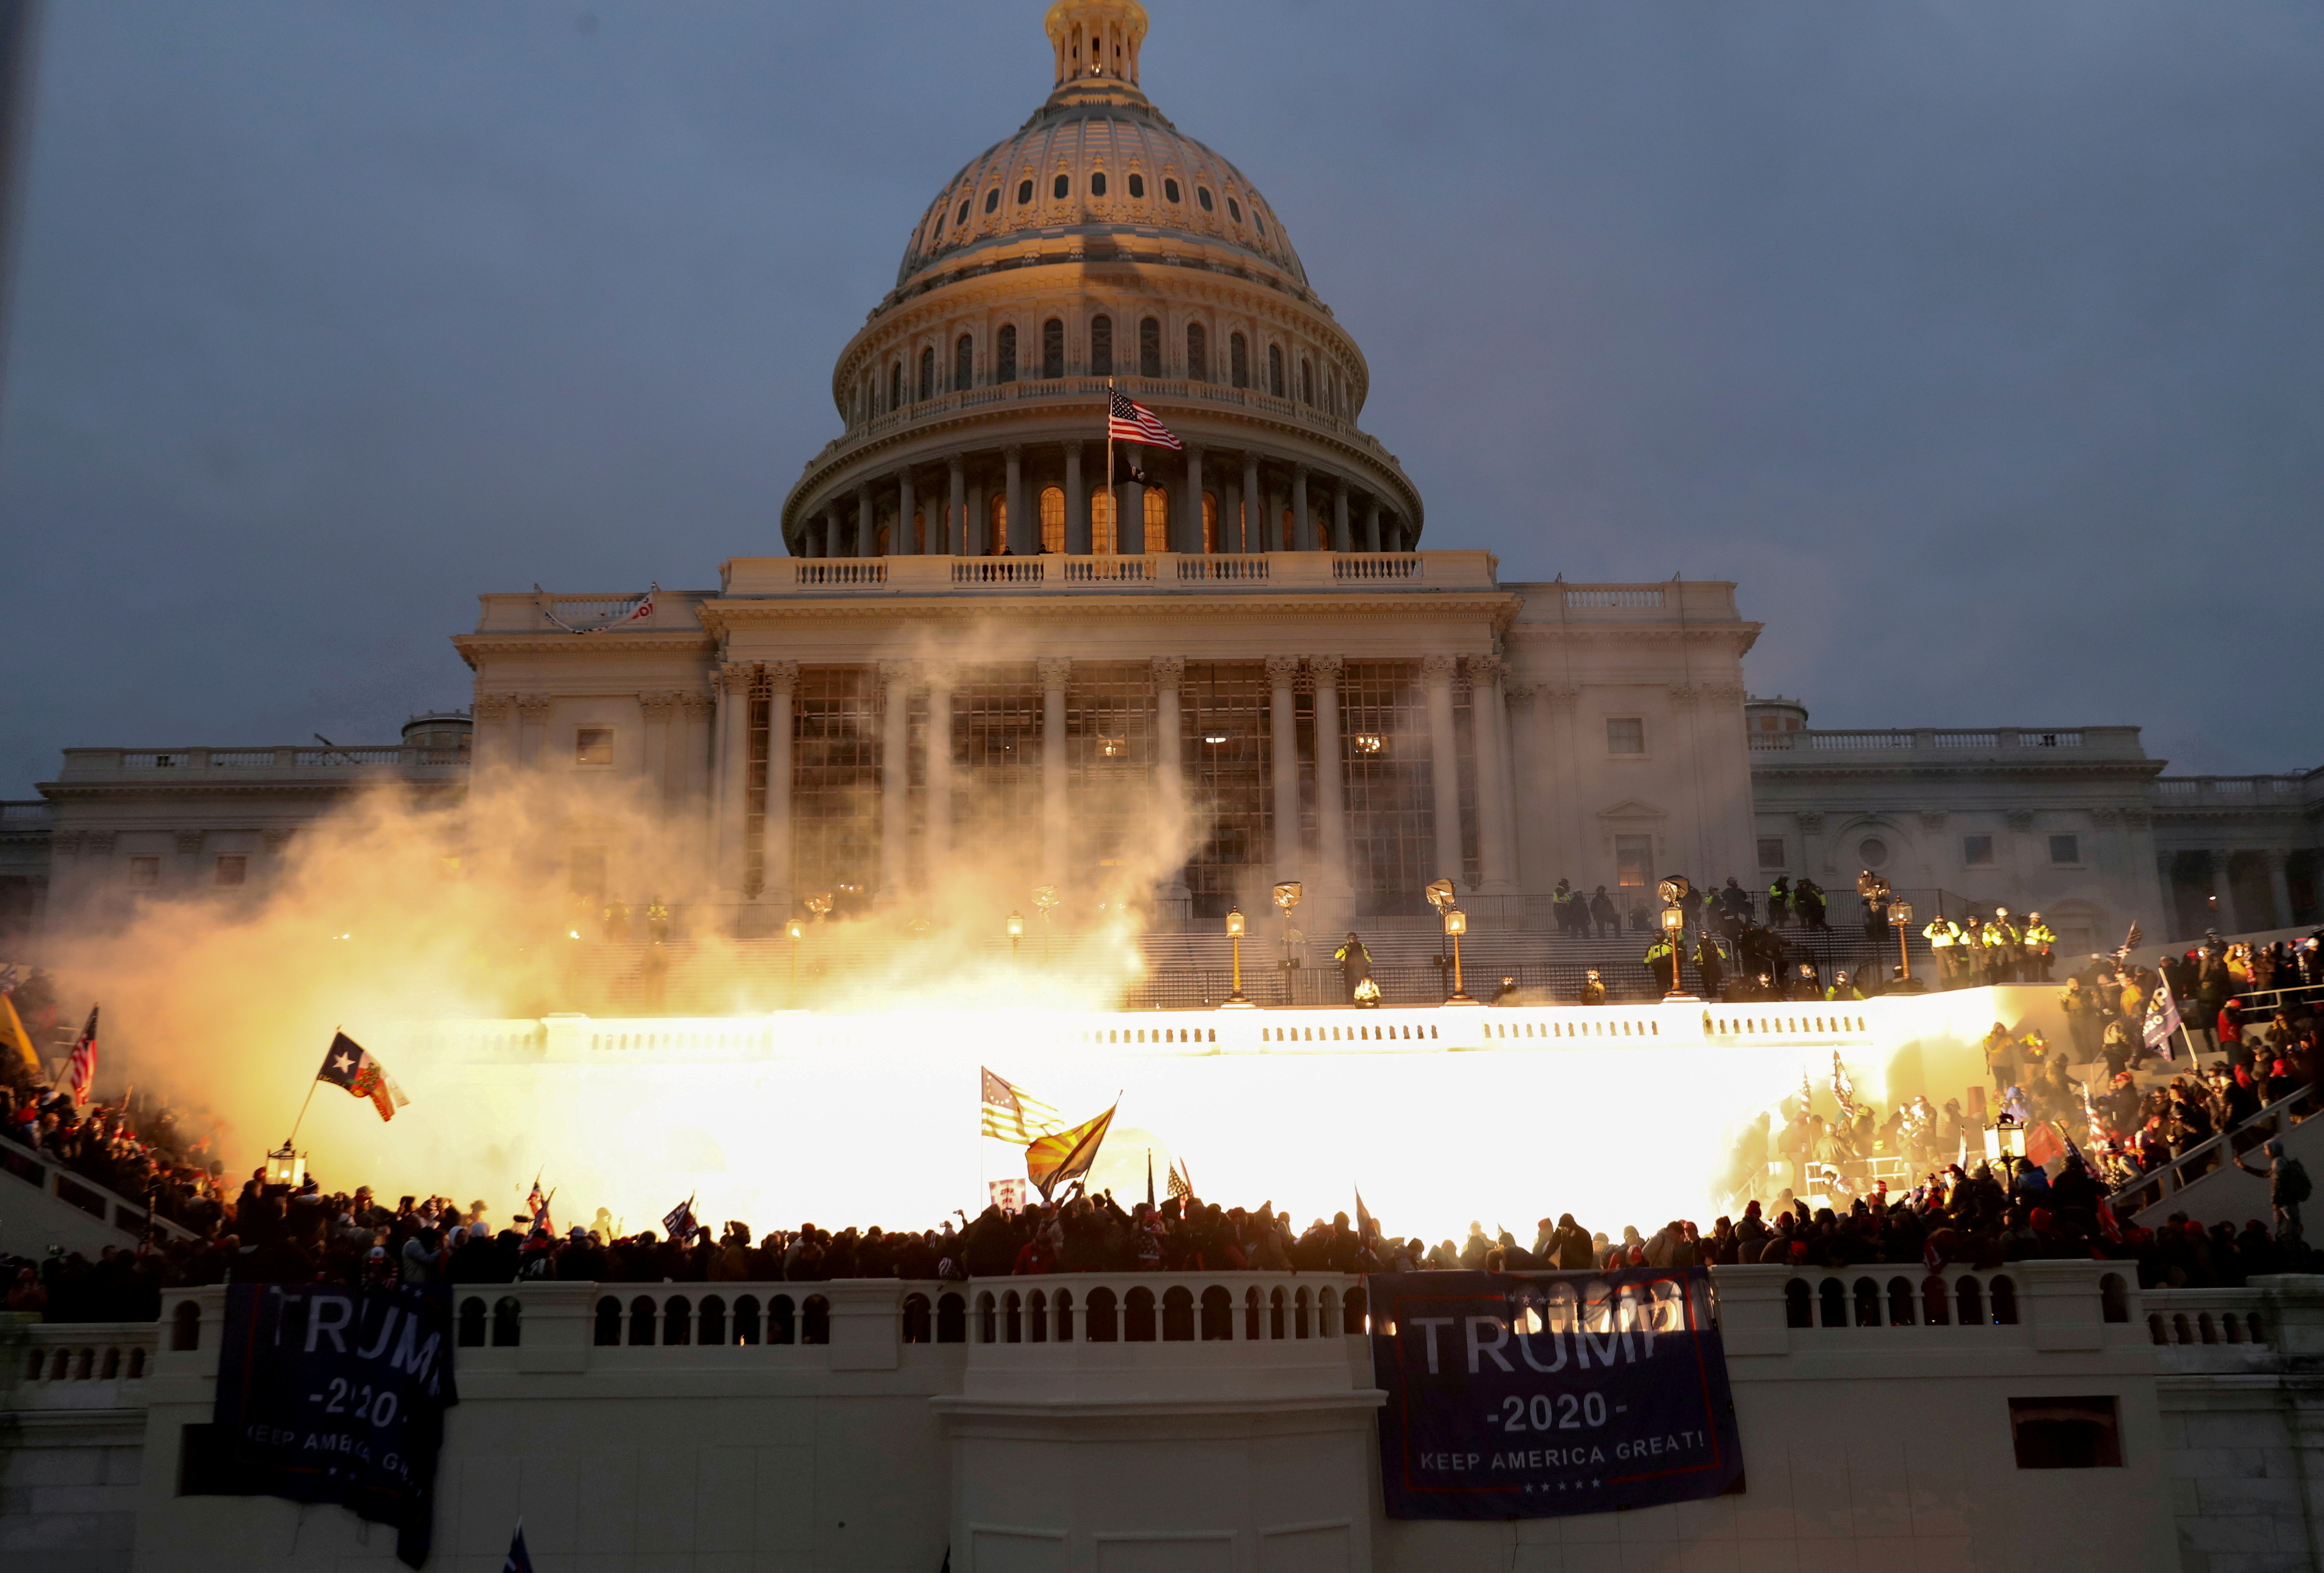 An explosion caused by a police munition is seen while supporters of U.S. President Donald Trump gather in front of the U.S. Capitol Building in Washington, U.S., January 6, 2021. REUTERS/Leah Millis/File Photo/File Photo